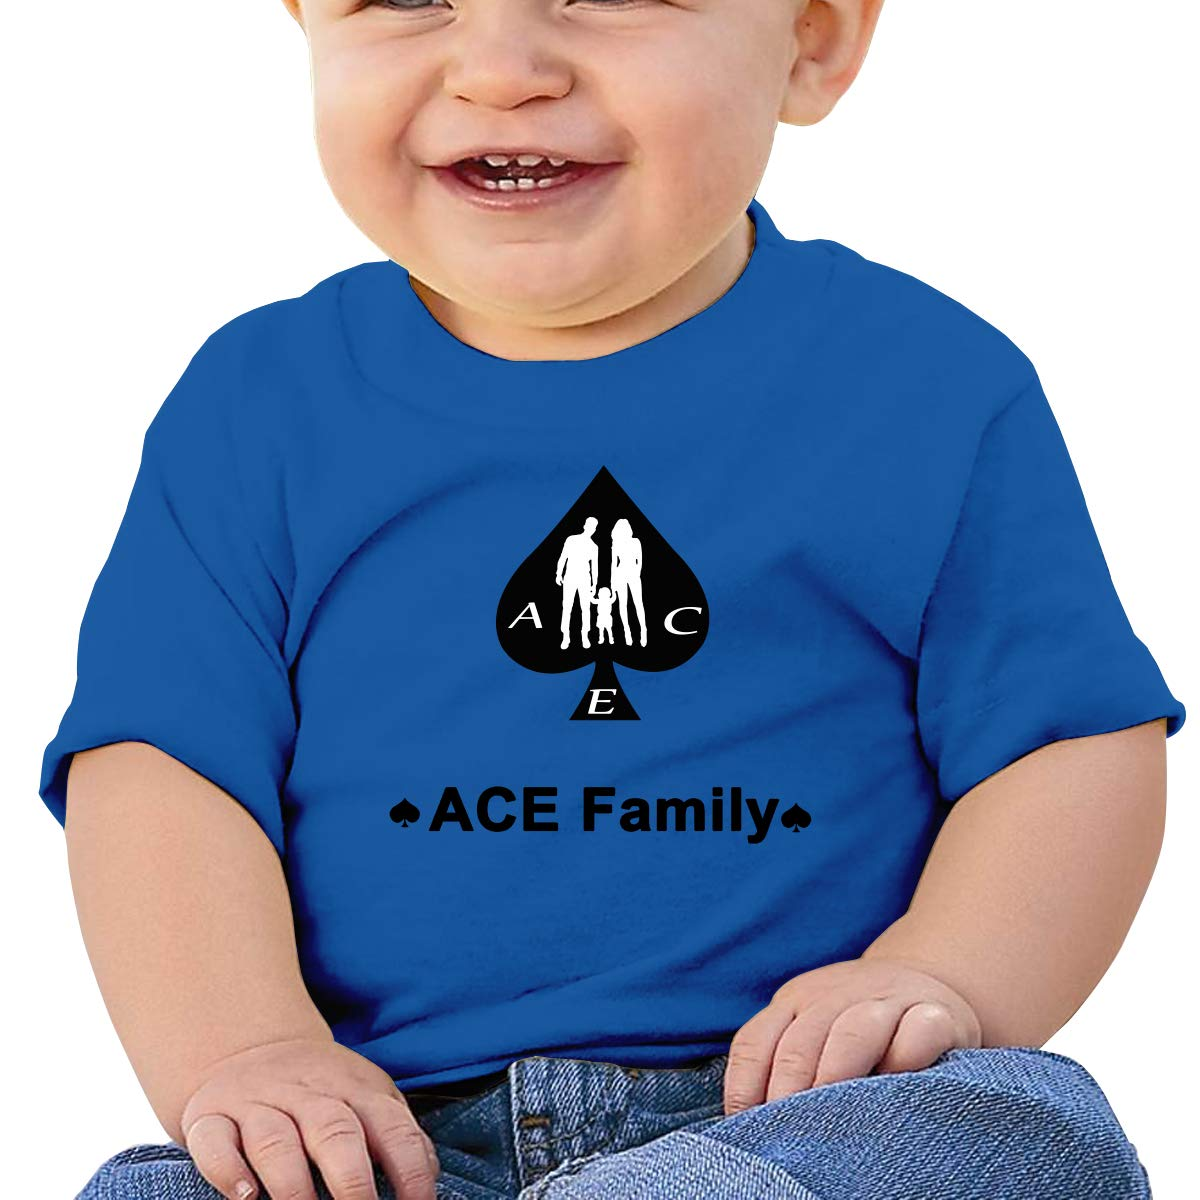 ACE Family Word Short Sleeve Trottie Shirt Cotton Round Collar T Shirt